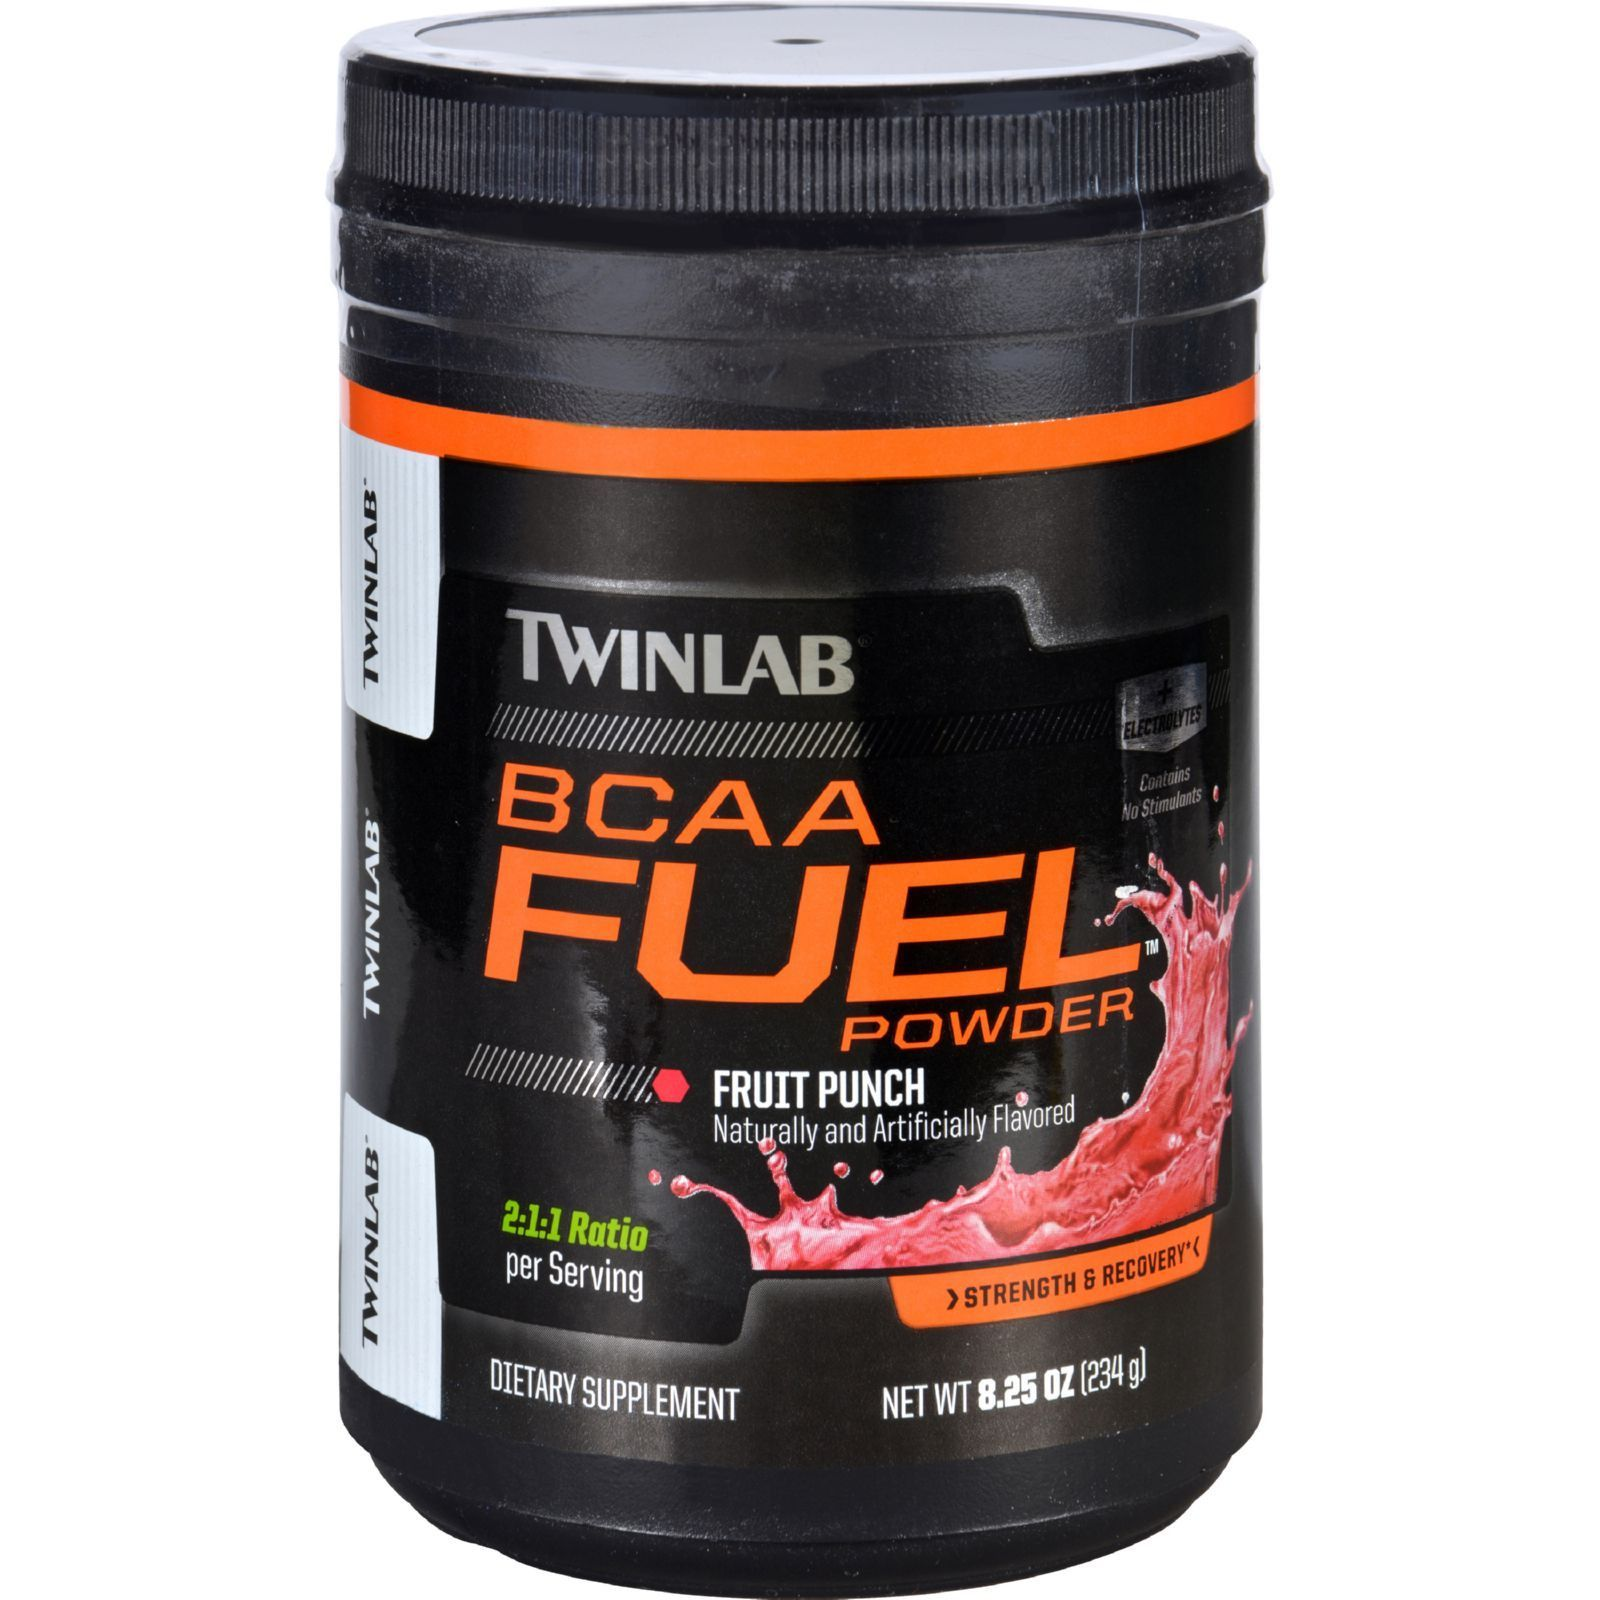 Now at our store Twinlab BCAA Fuel... Available here: http://endlesssupplies.store/products/twinlab-bcaa-fuel-fruit-punch-powder-8-25-oz